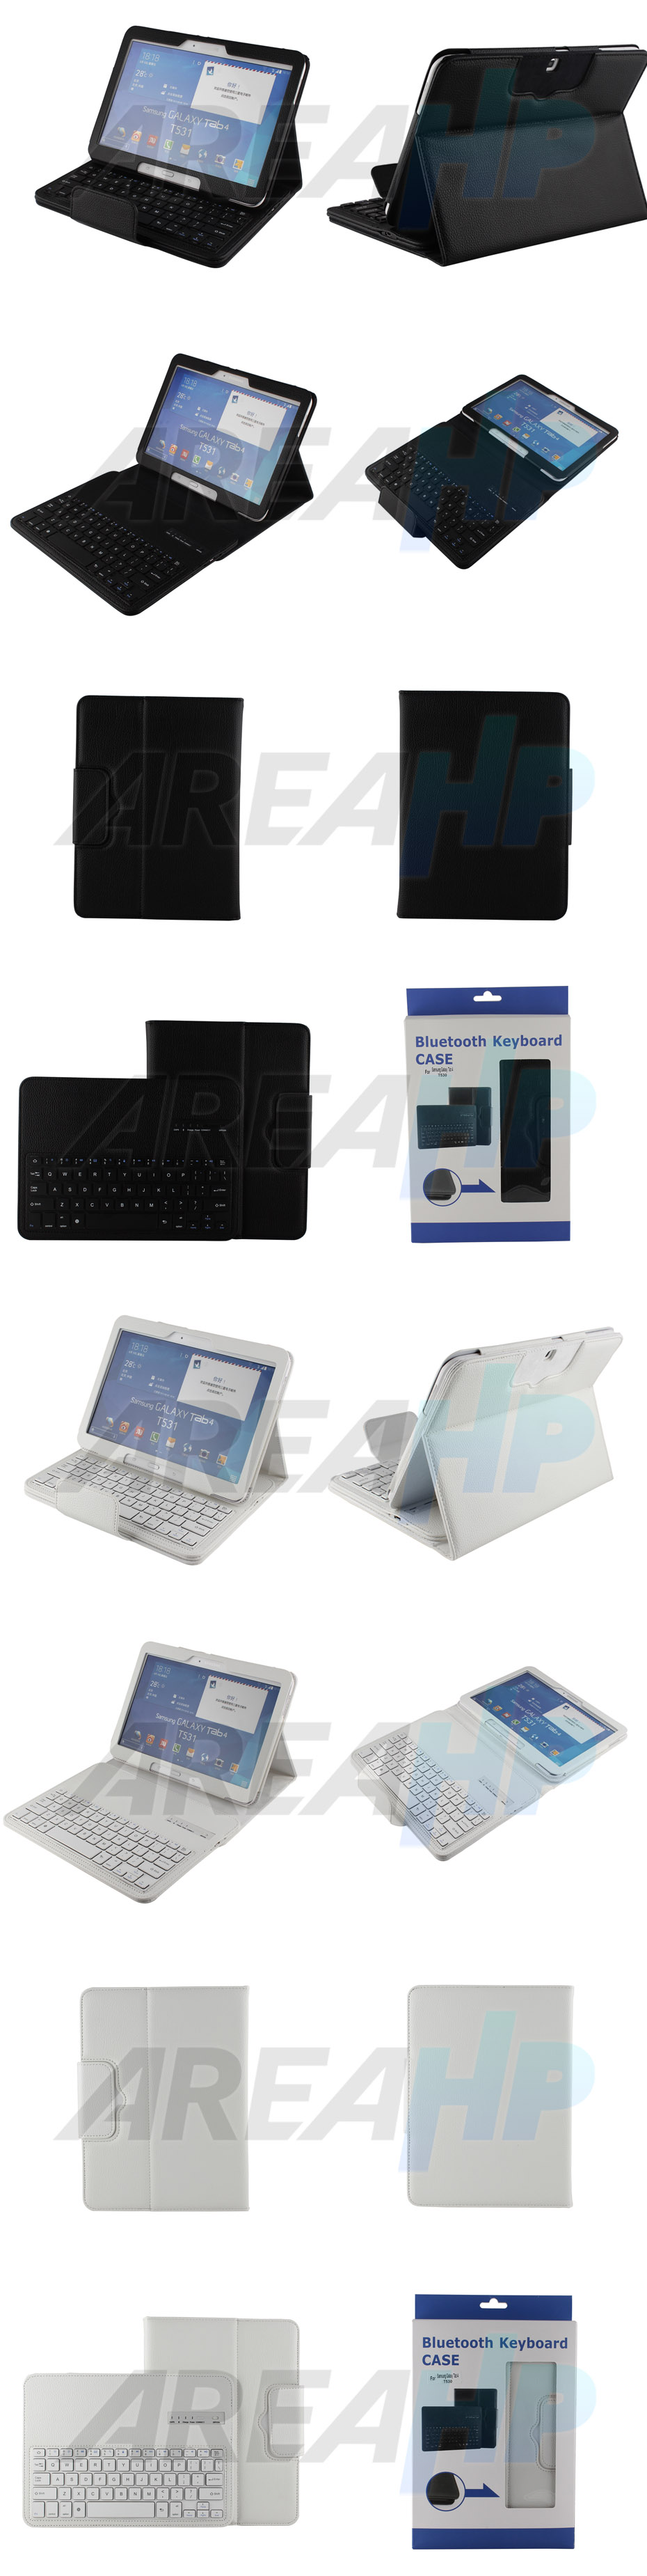 Removable Keyboard Leather Case for Samsung Galaxy Tab4 10.1 Overview